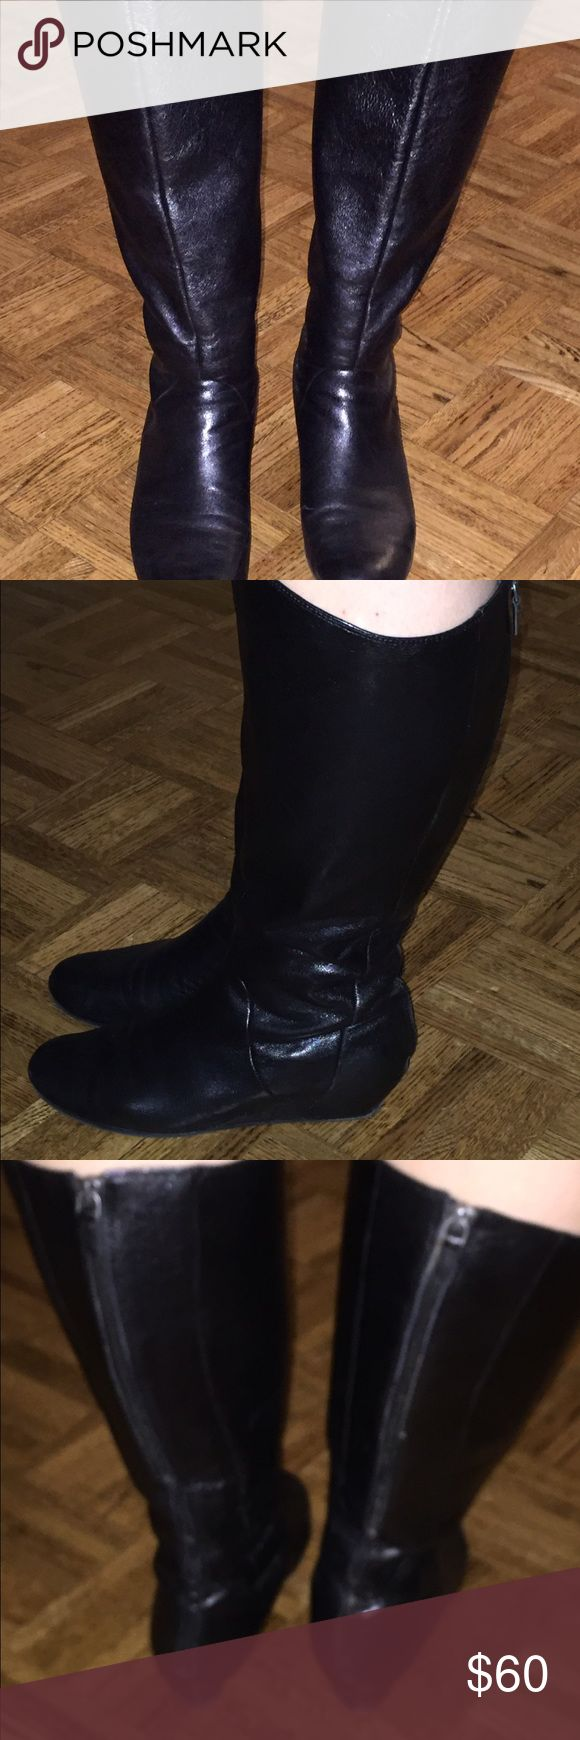 BP. Nordstrom Boots - Extended Calf Size BP. Nordstrom Wide Calf boots. Zipper up the back. Small wedge. Very comfy, almost perfect condition BP. Nordstrom Shoes Winter & Rain Boots